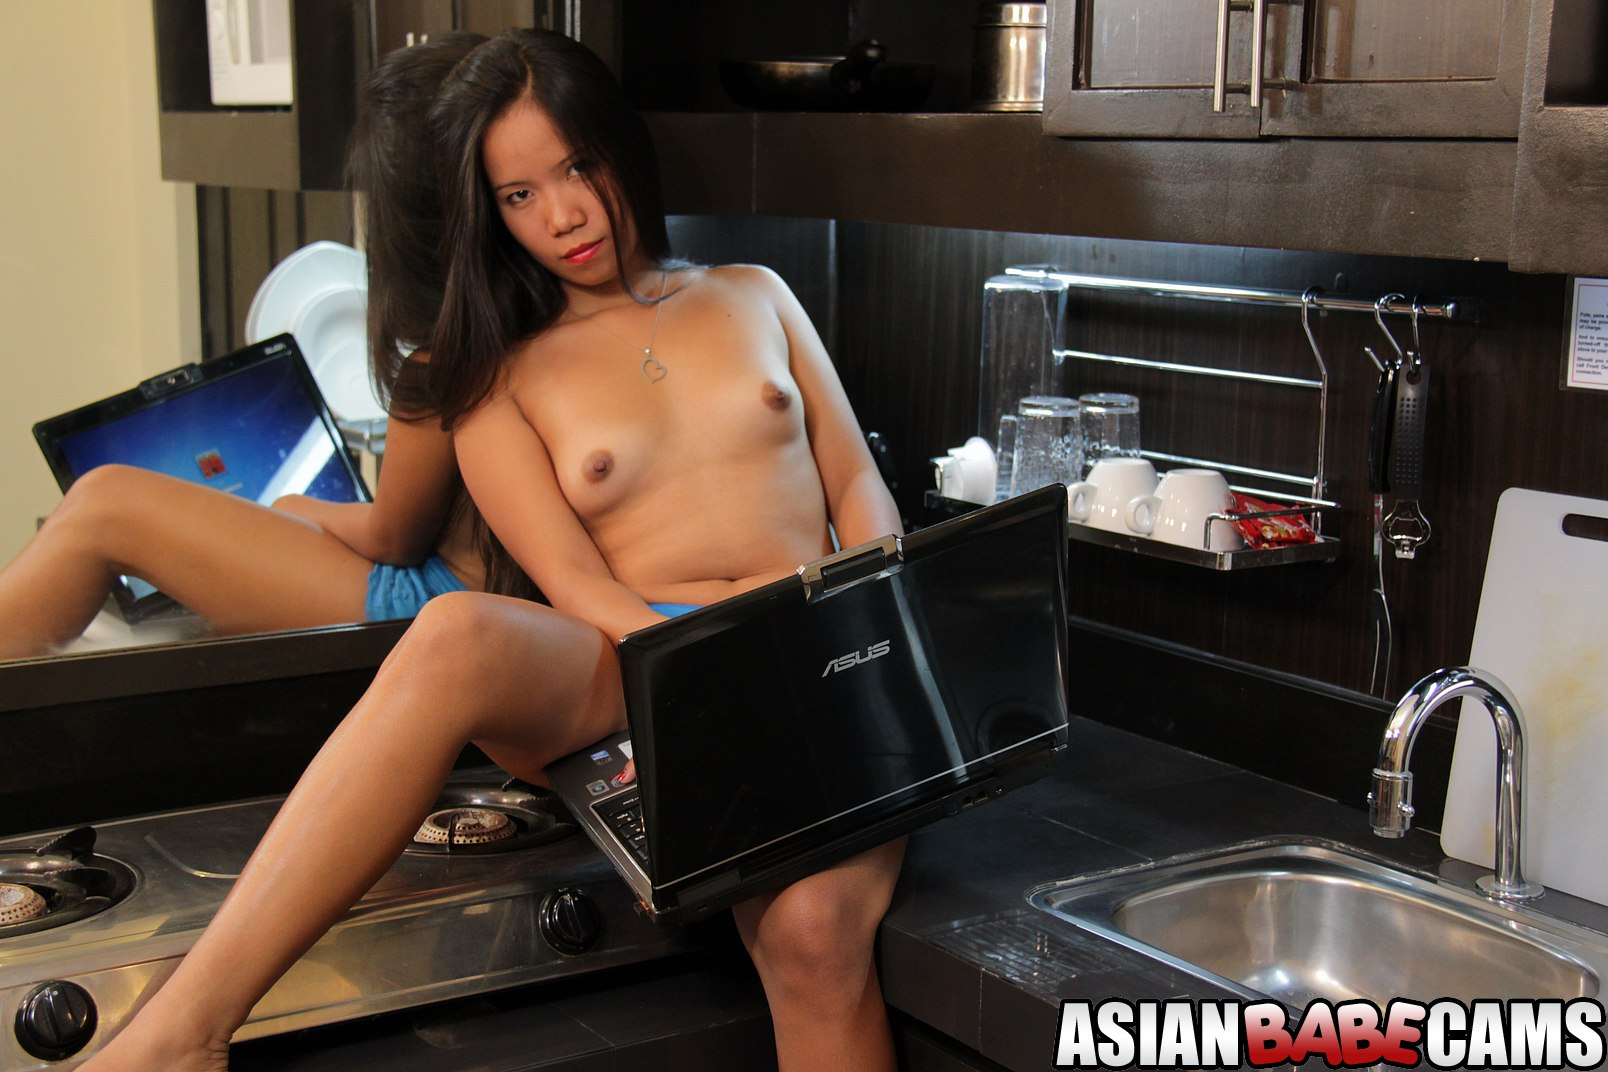 Asian babe getting that cheating bastard off with her cunt 9